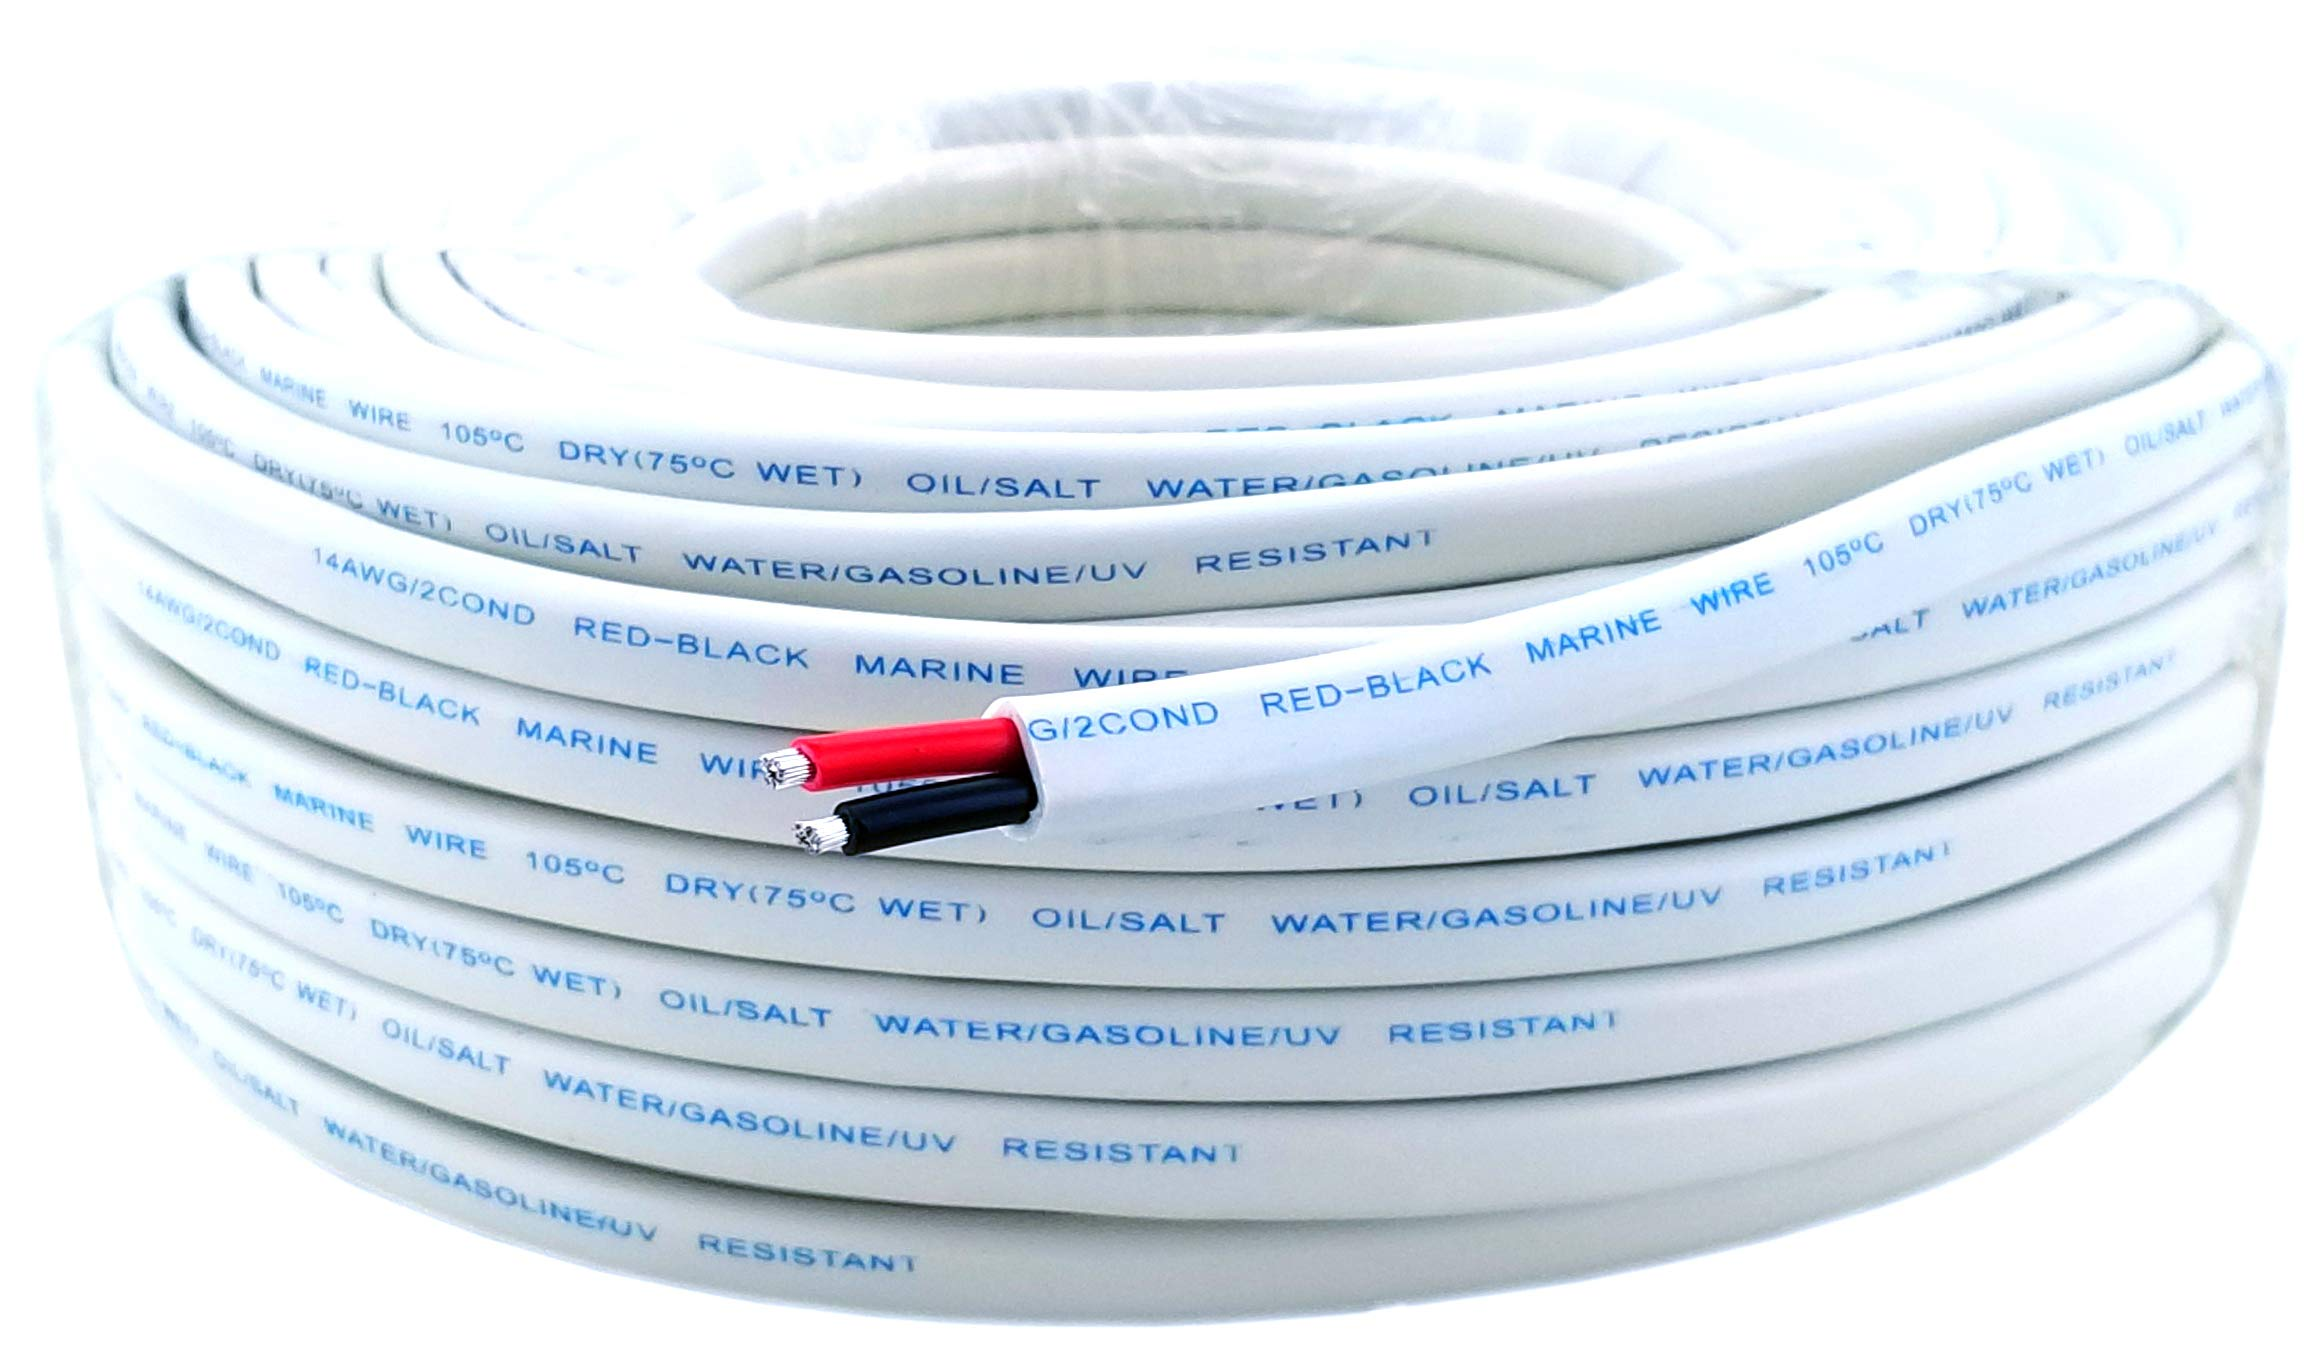 14 Gauge (American Wire Ga) Tinned Oxygen Free Copper Red Black Duplex Sheathed Marine Boat Wire. | Cable Length: 100 FT (Also Available in 50 FT roll) by GS Power (Image #1)